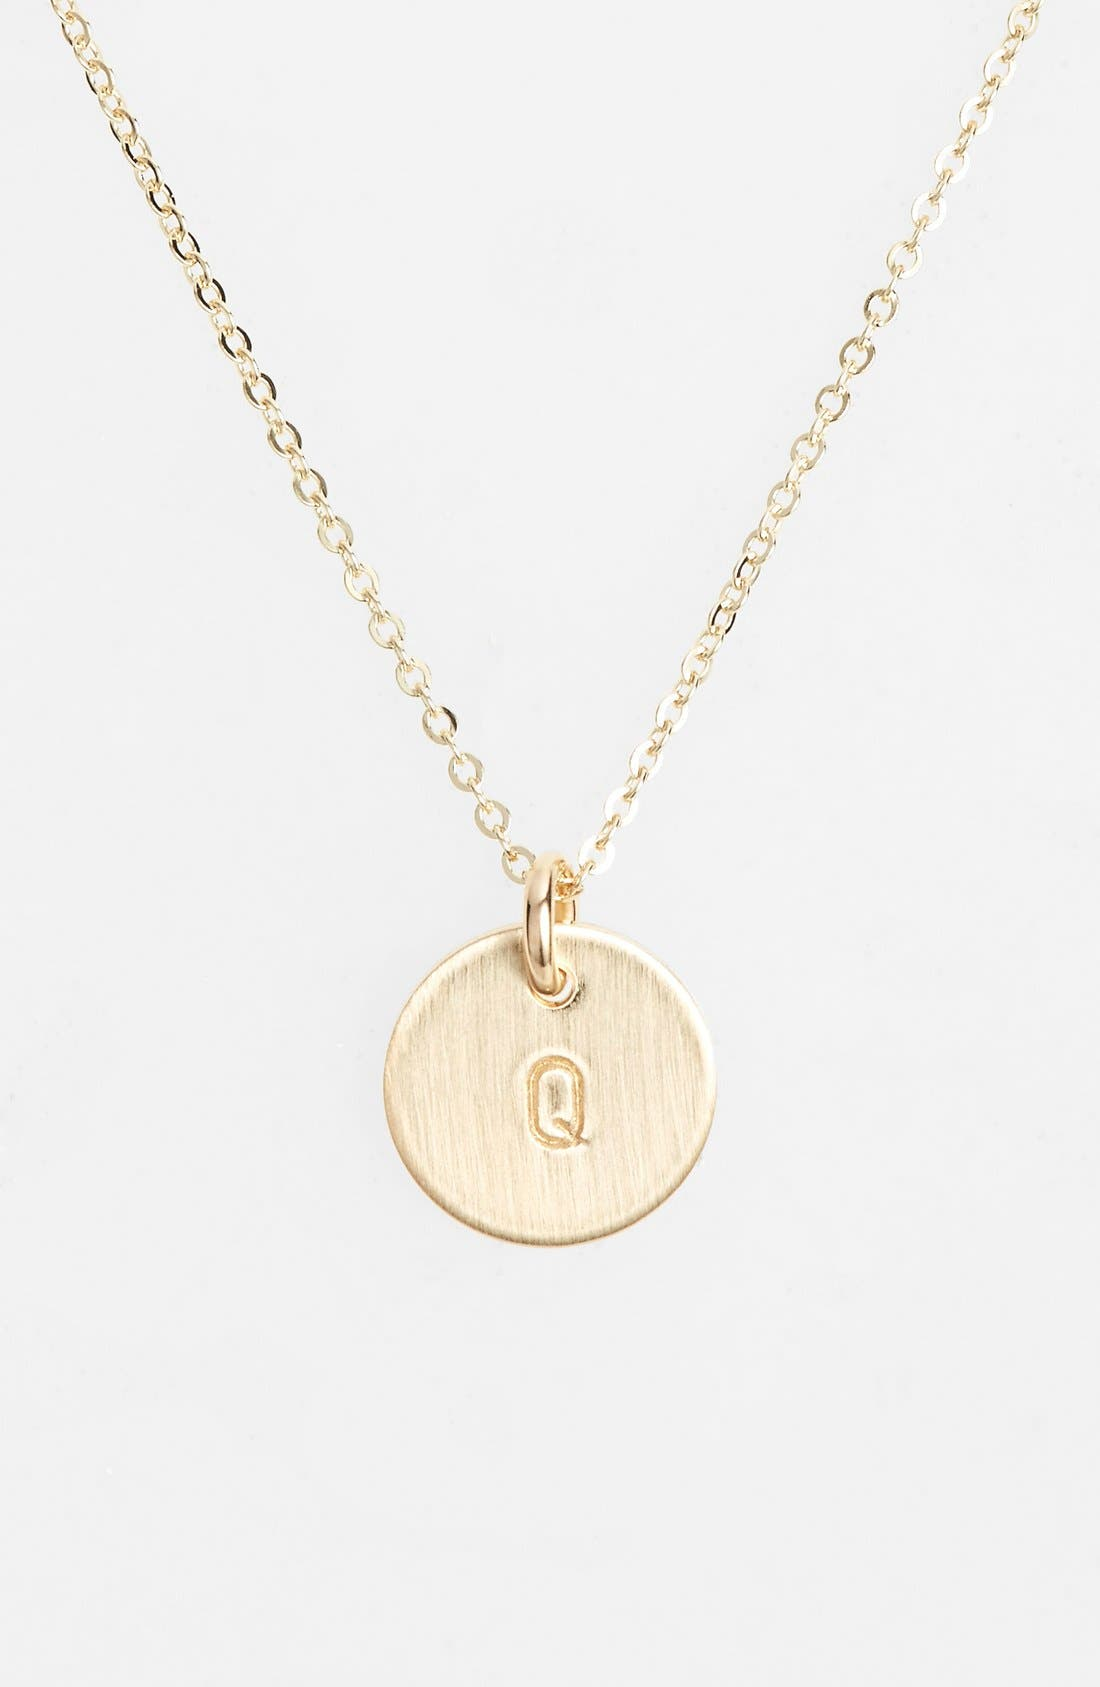 14k-Gold Fill Initial Mini Circle Necklace,                         Main,                         color, 14K Gold Fill Q